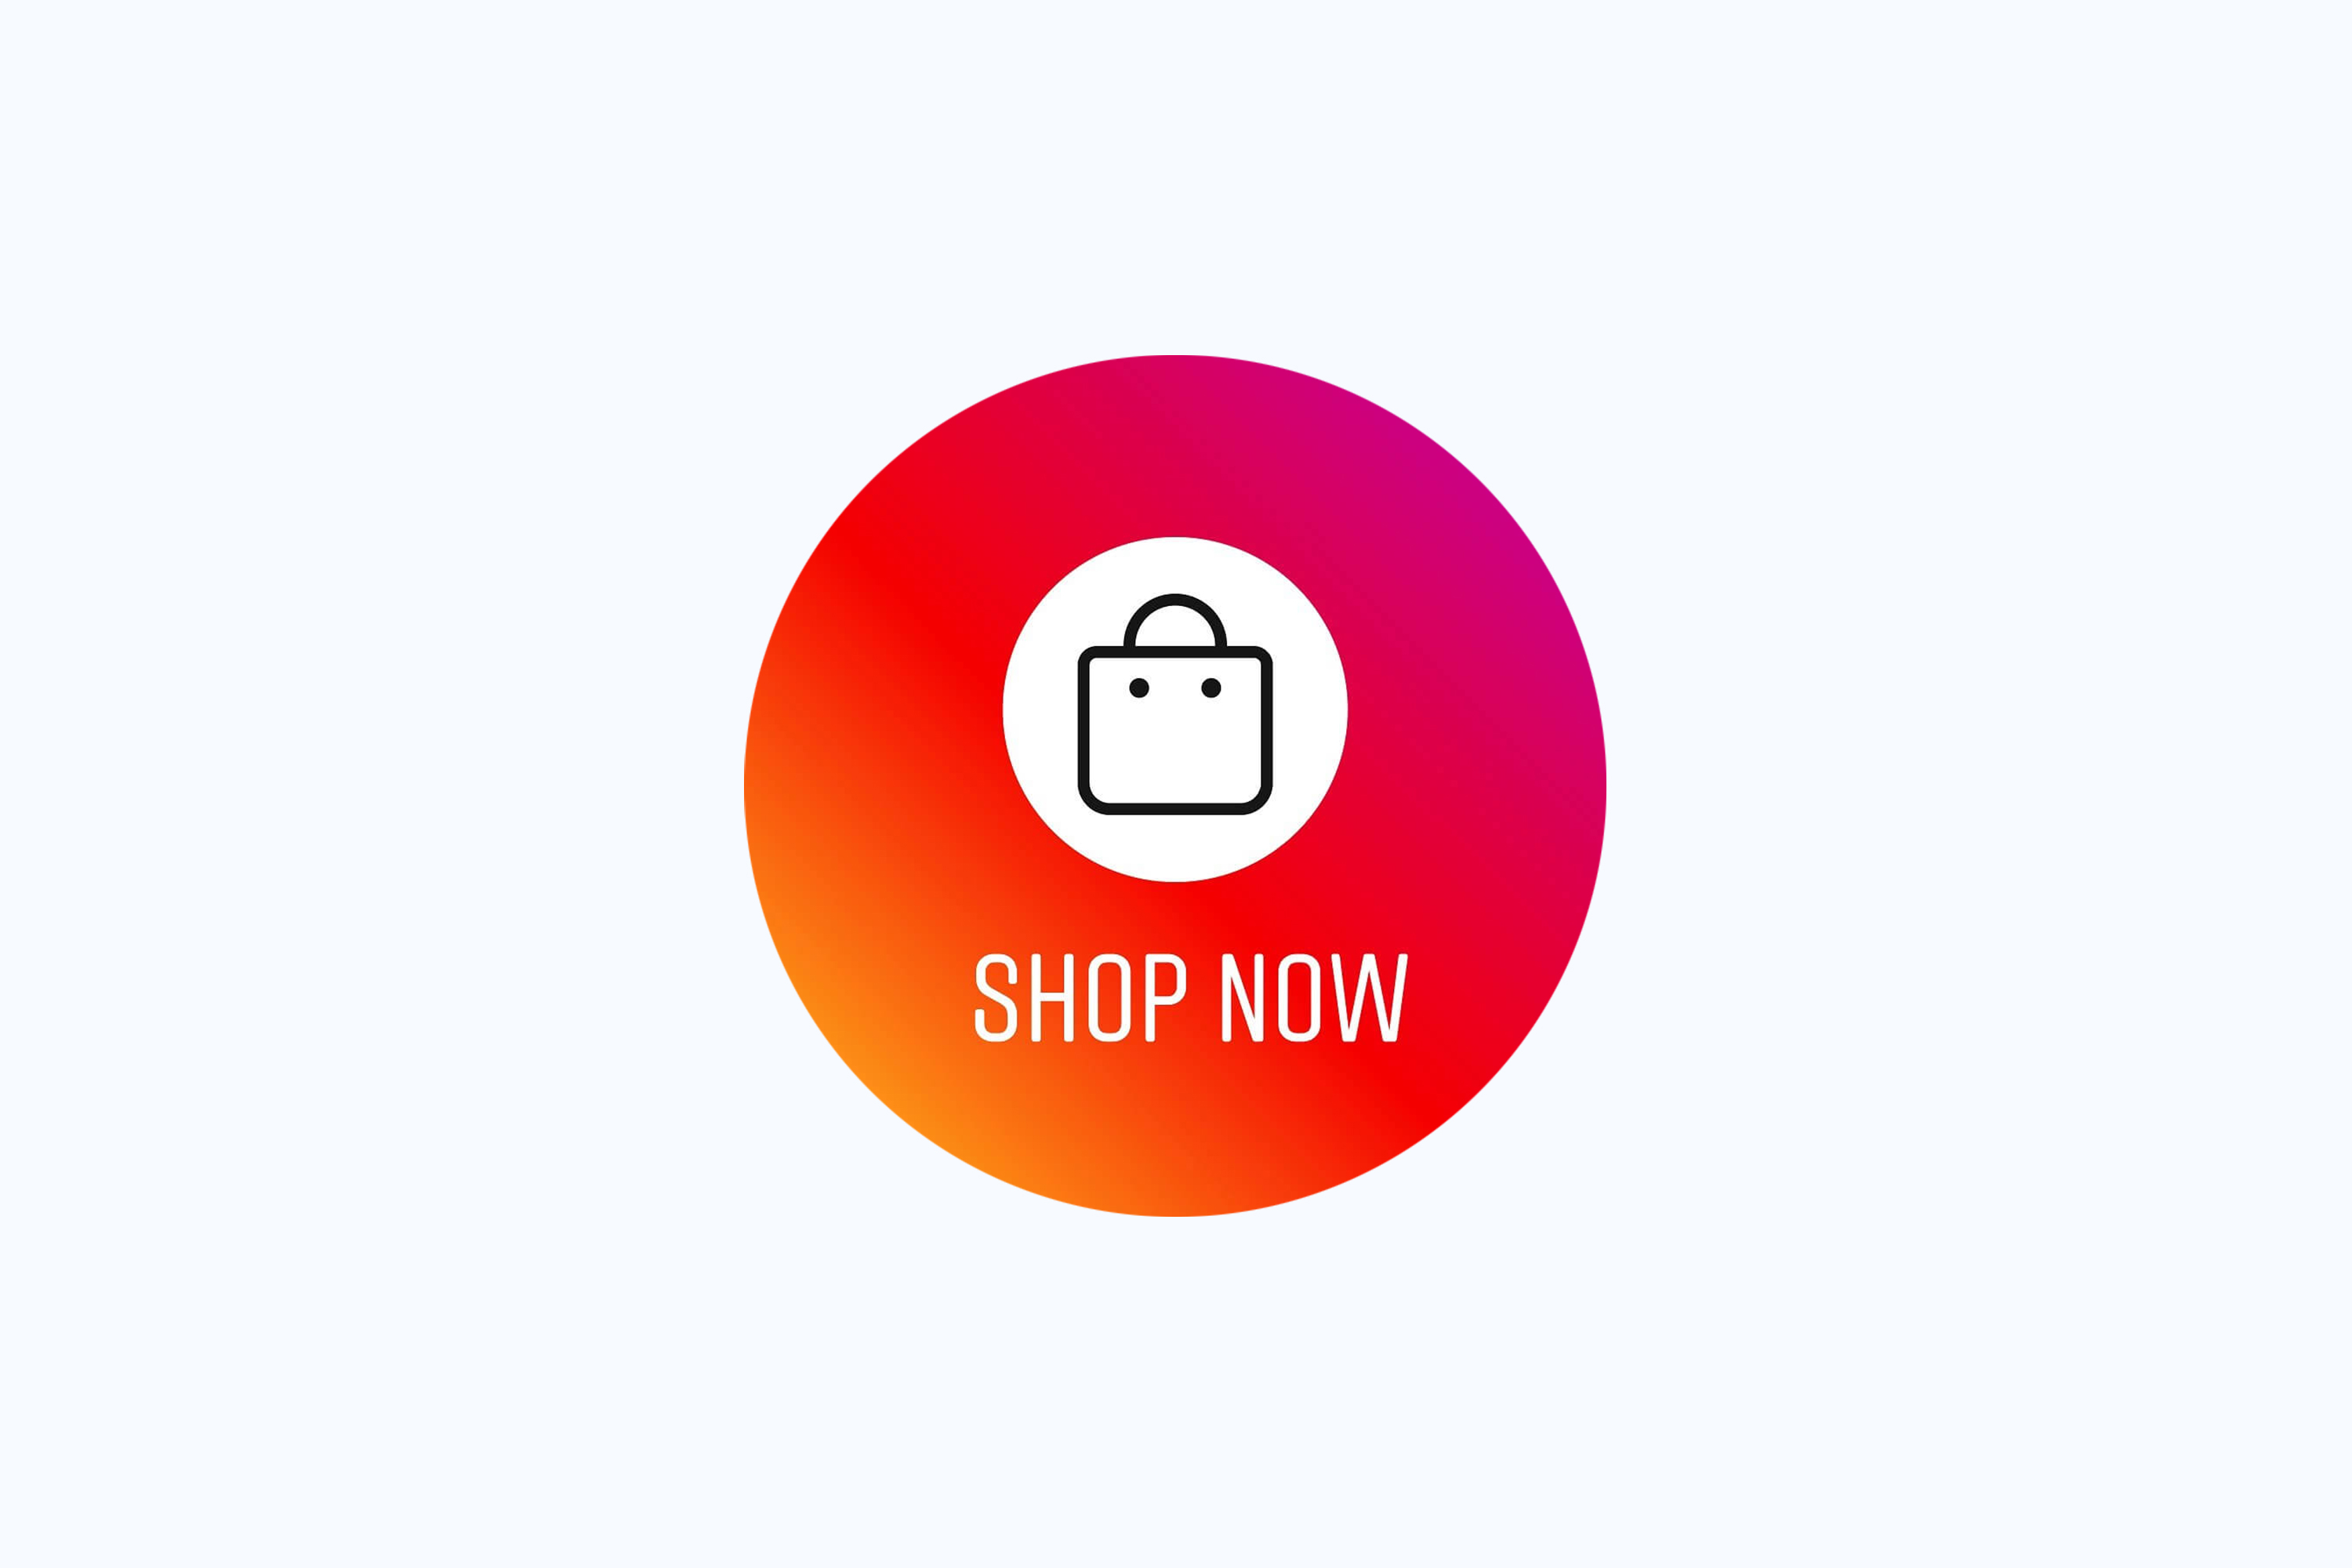 3 Instagram Shopping Tools blog image 1.jpg